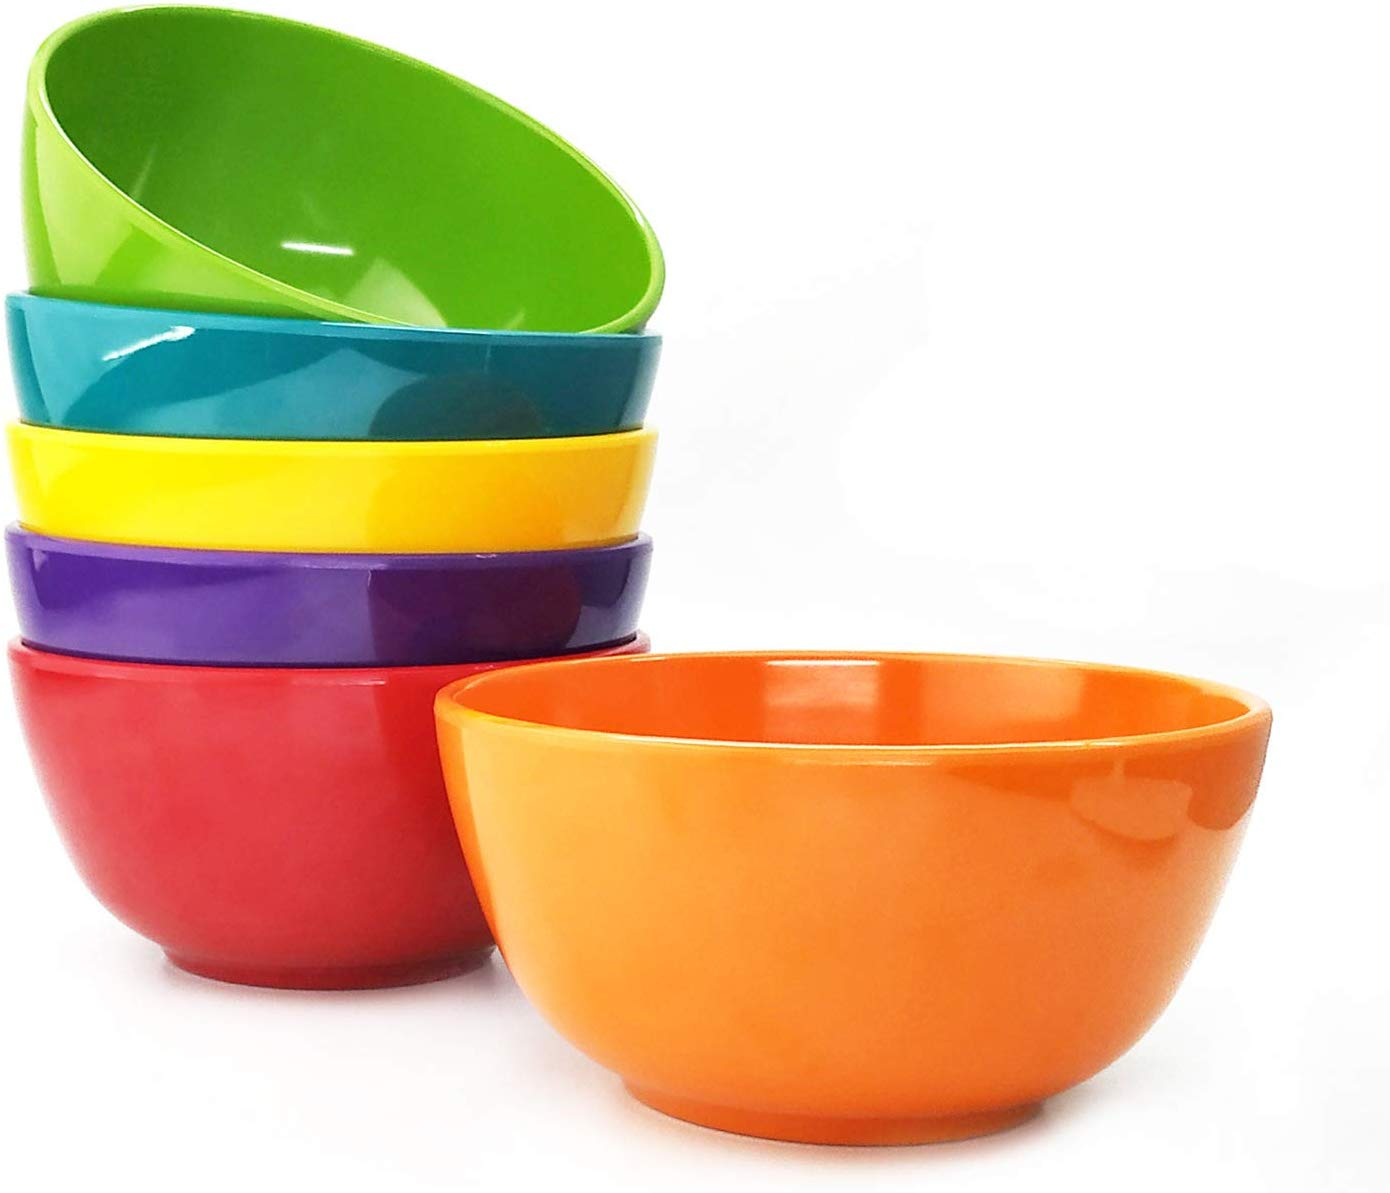 L&C HOUSEWARES Melamine Bowls Set of 12-28oz